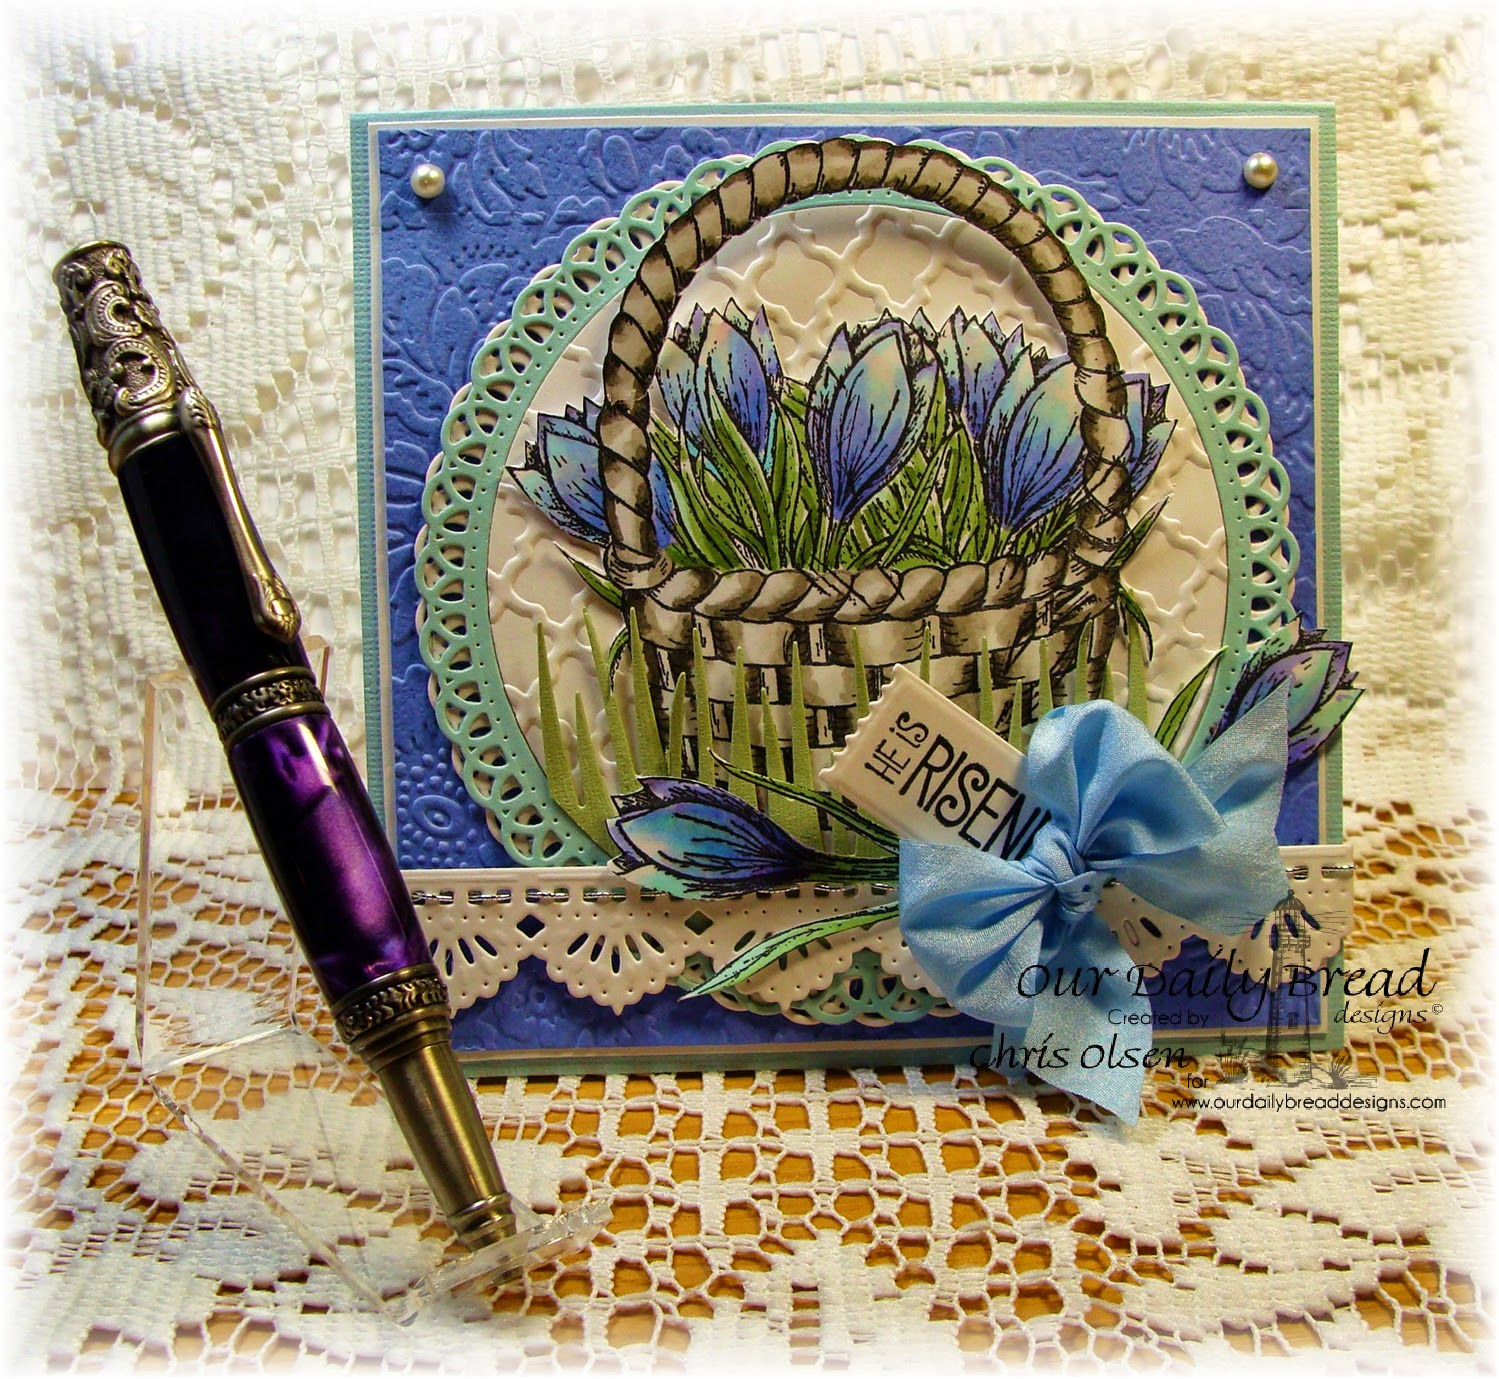 Our Daily Bread Designs, The Lord is Risen, Basket of Blessings, Happy Resurrection Day, Mini Tag dies, Beautiful Borders die, grass dies, designed by Chris Olsen, amethyst Victorian pen, Chiselinknmore, Etsy